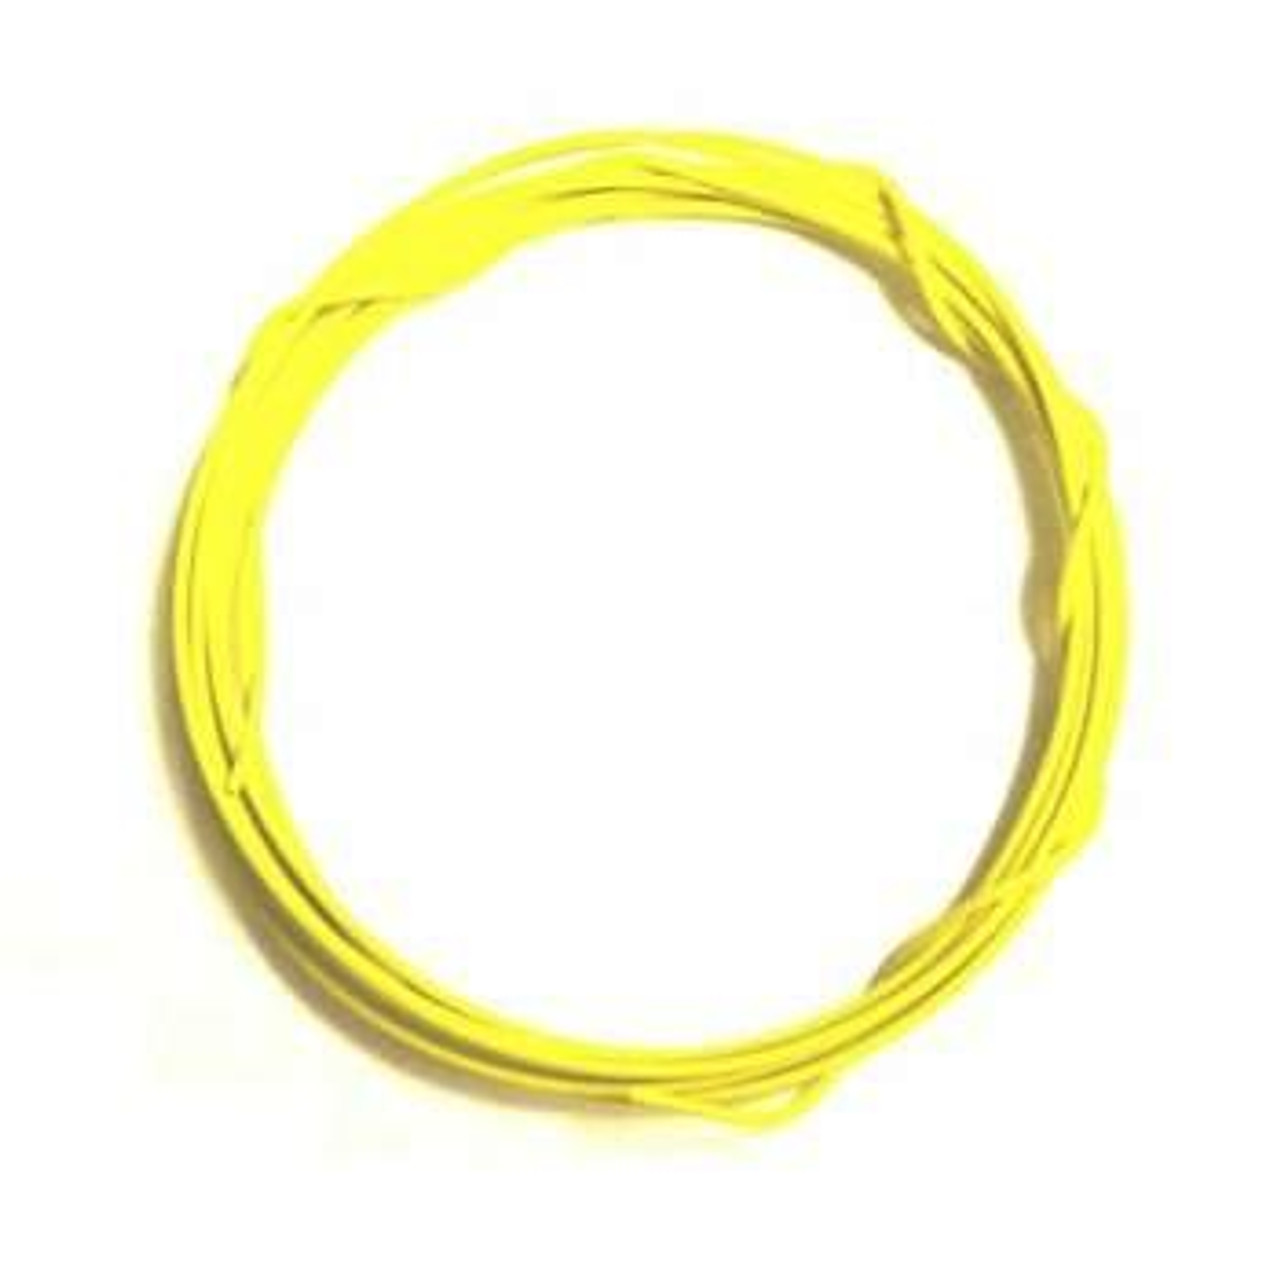 Stranded 26 Gauge Guitar Circuit Wire-Yellow